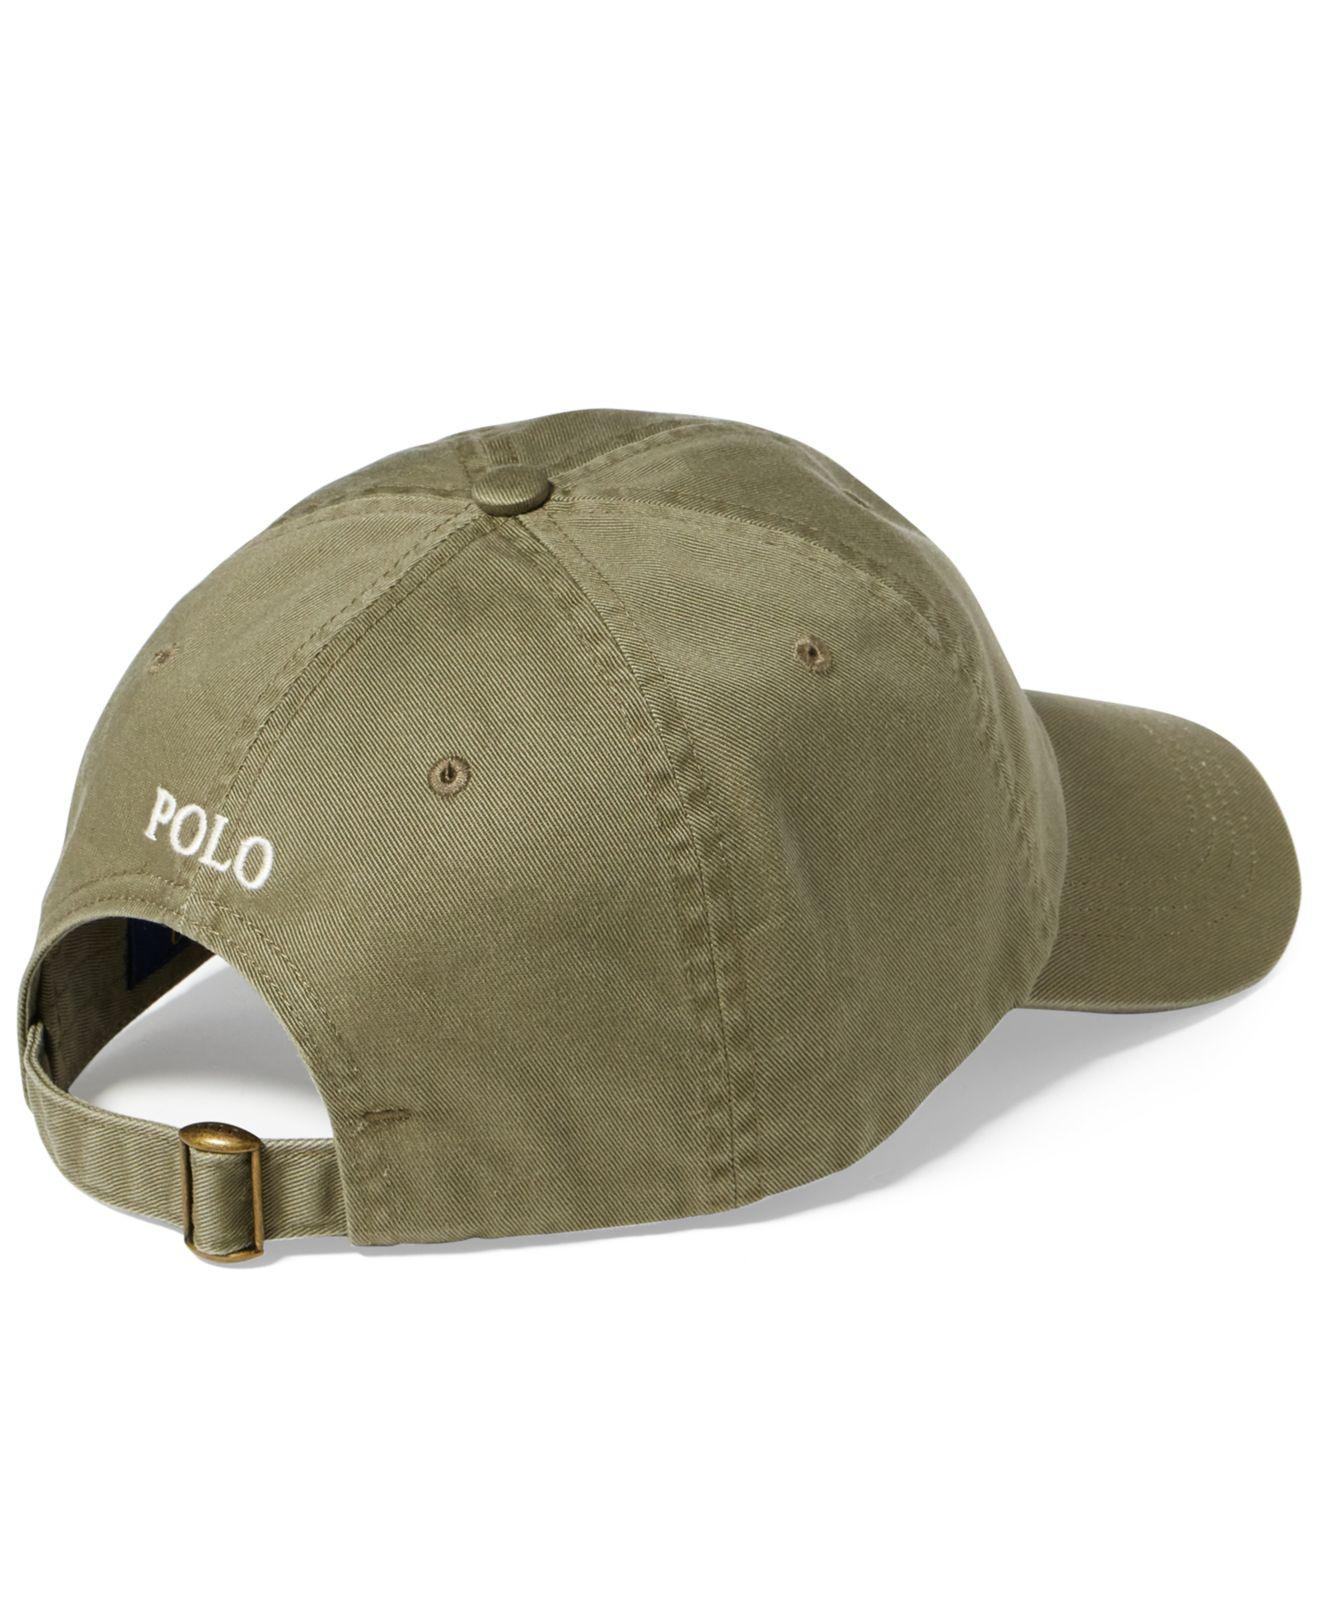 Lyst - Polo Ralph Lauren Men s Classic Cotton Chino Sports Cap in ... c9c993ad5015